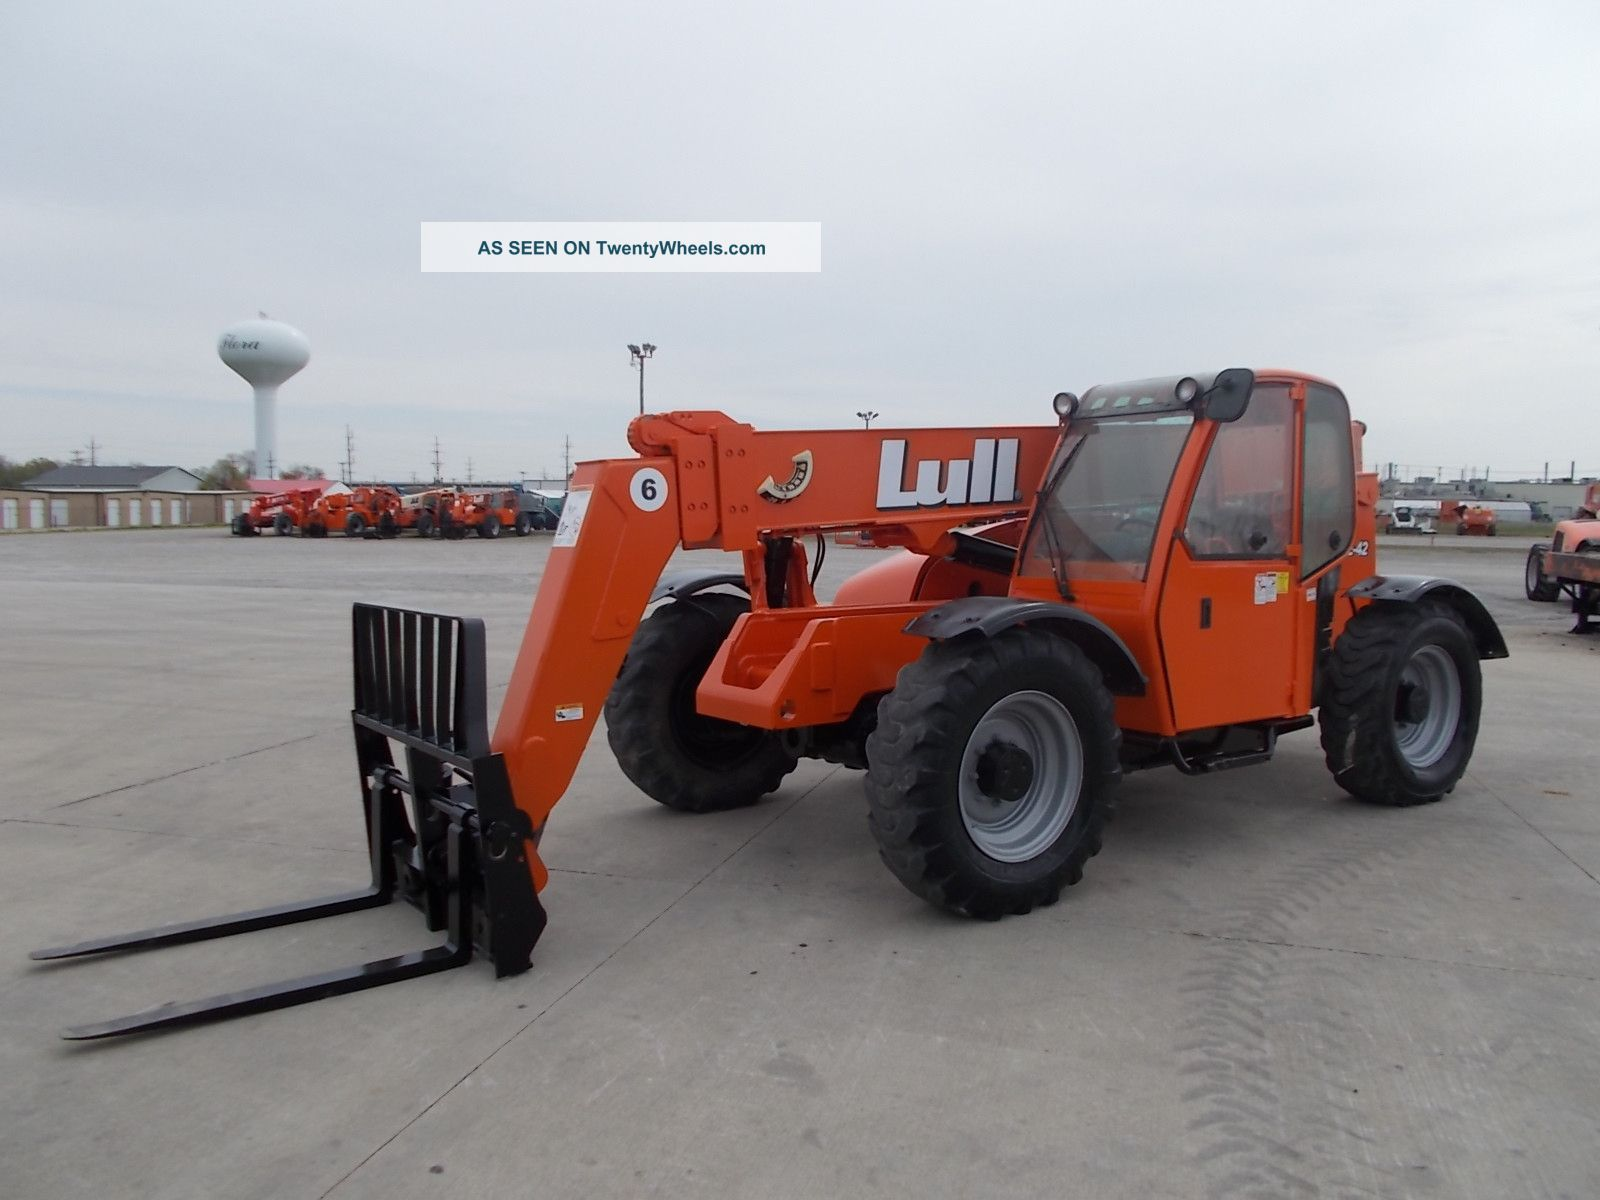 Lull 644e - 42 Telescopic Telehandler Forklift Lift Enclosed Cab Forklifts & Other Lifts photo